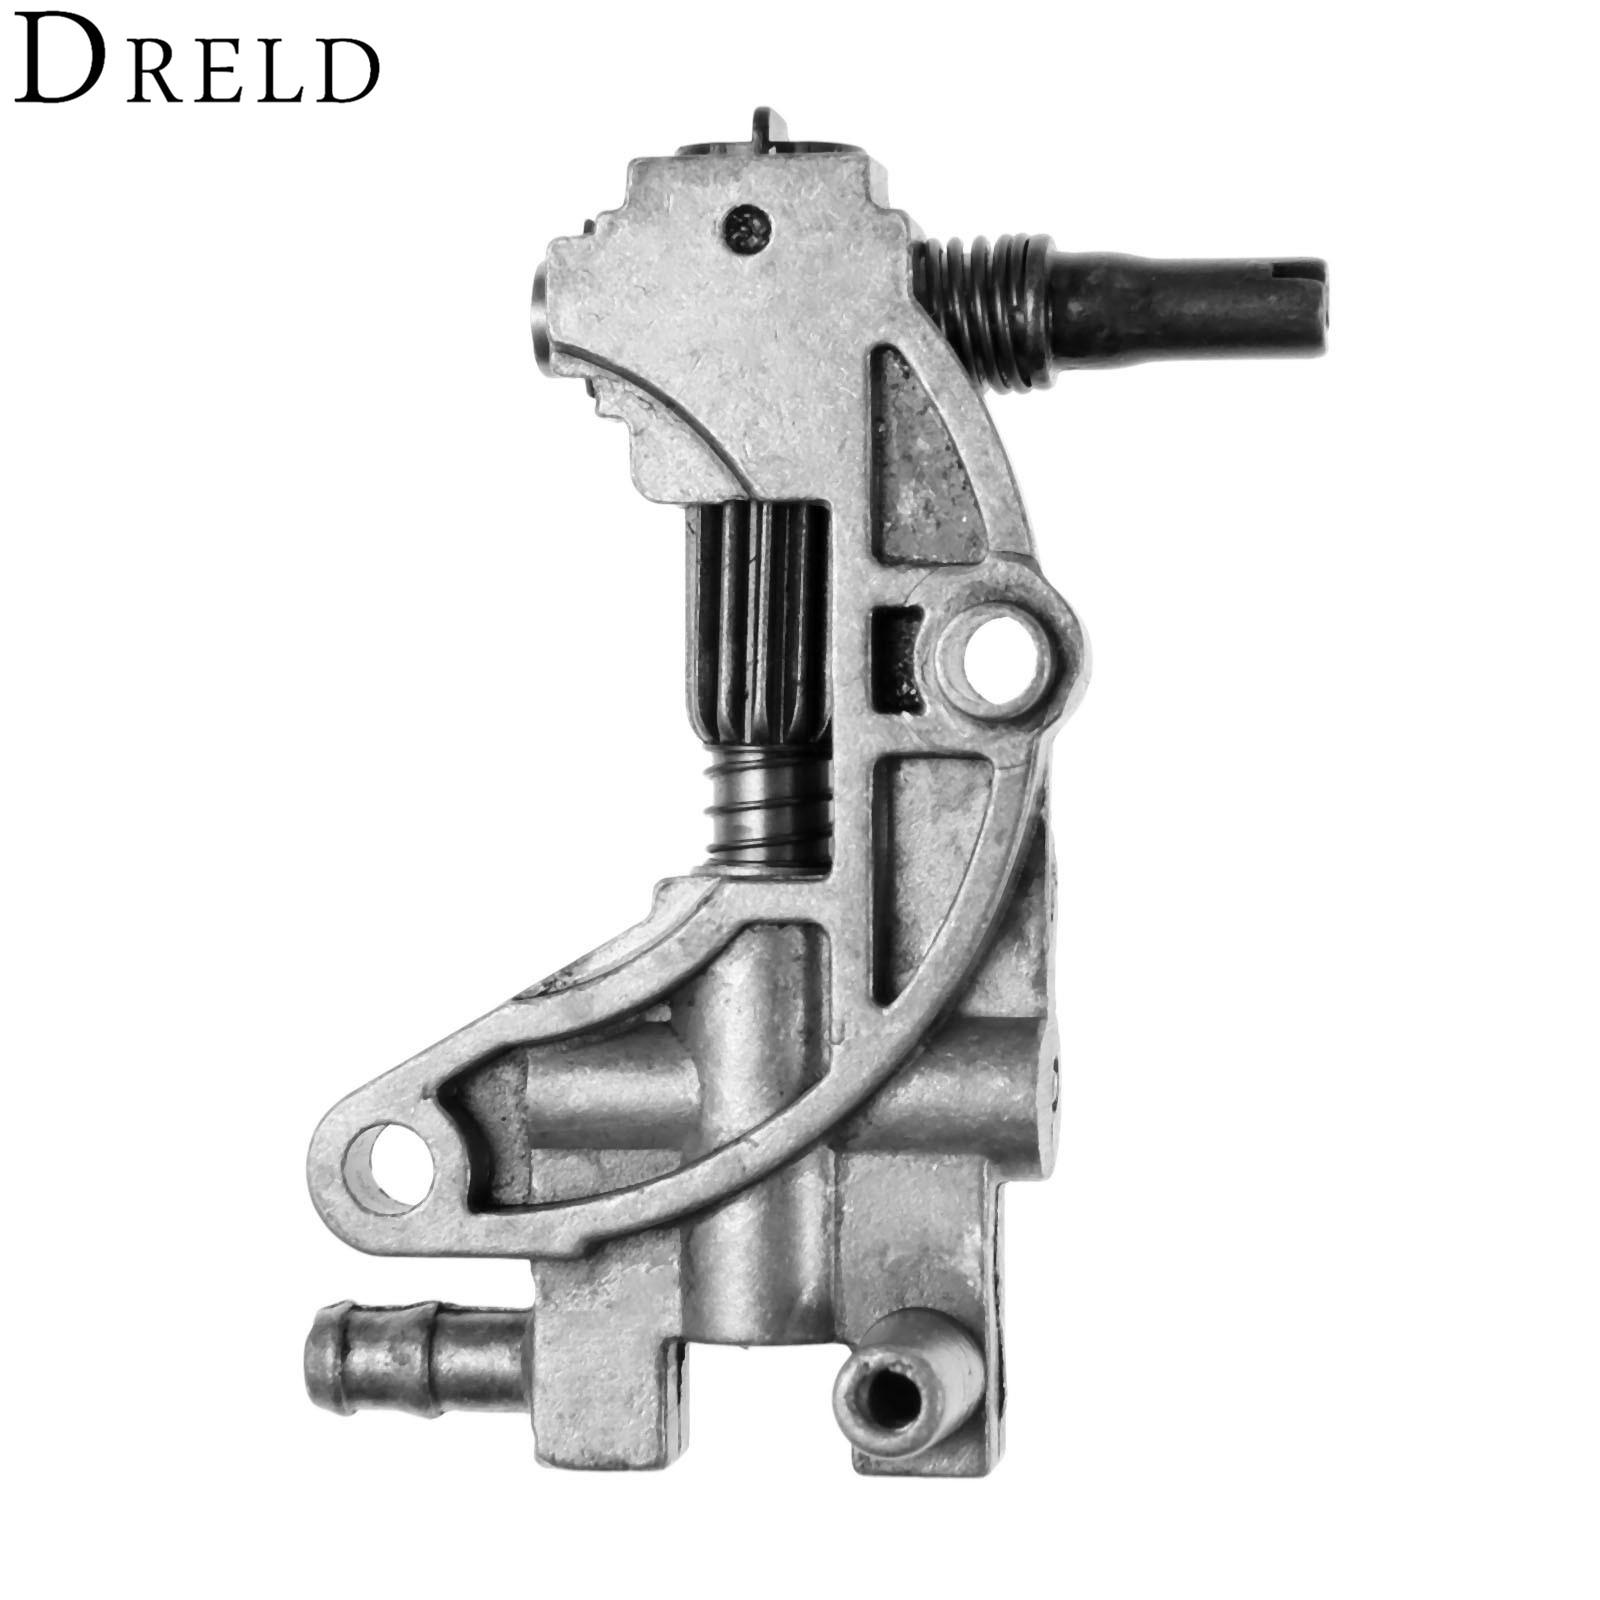 chinese DRELD 2-Stroke Oil Pump Chainsaw Forced Air Cooling for 5200 4500  5800 58 52CC 45CC Chinese Chainsaws Petrol Power